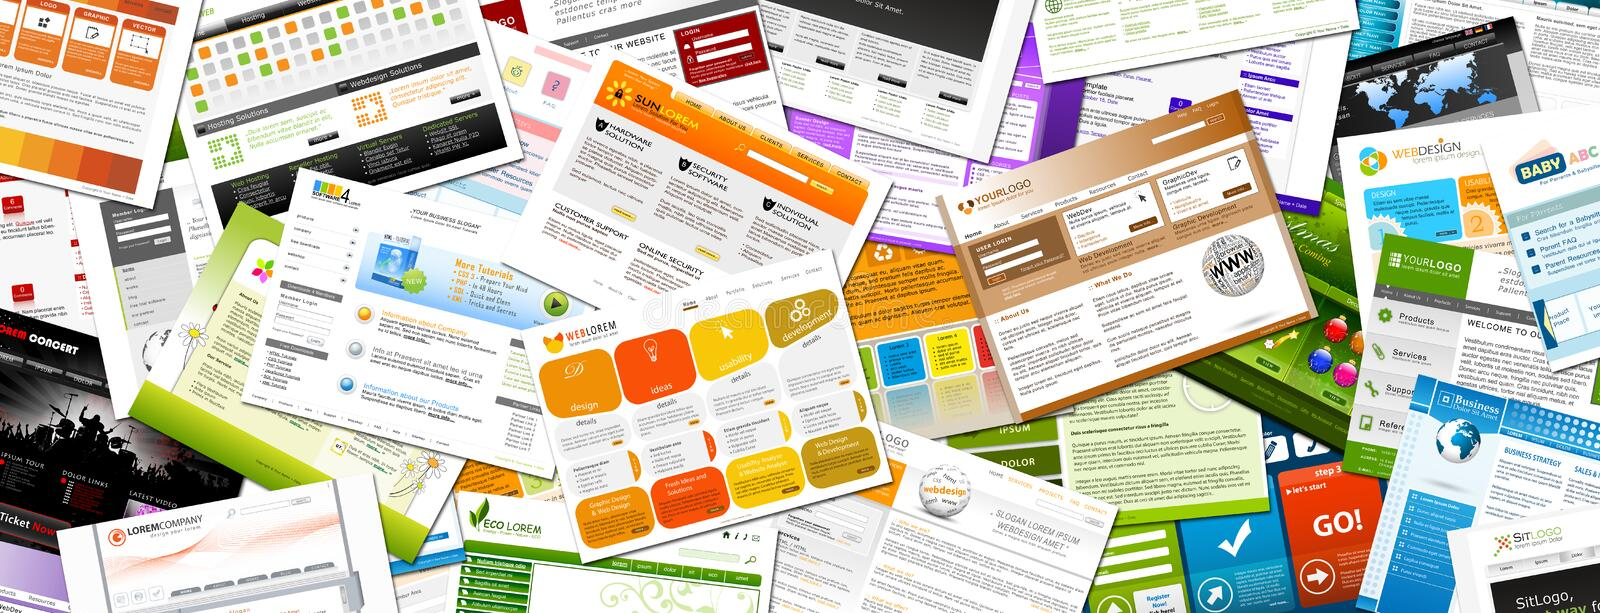 Website - Colorful Webdesign Templates Panorama - Banner. Website - Webdesign Templates Panorama Backdrop - Horizontal Colorful Background Banner royalty free illustration